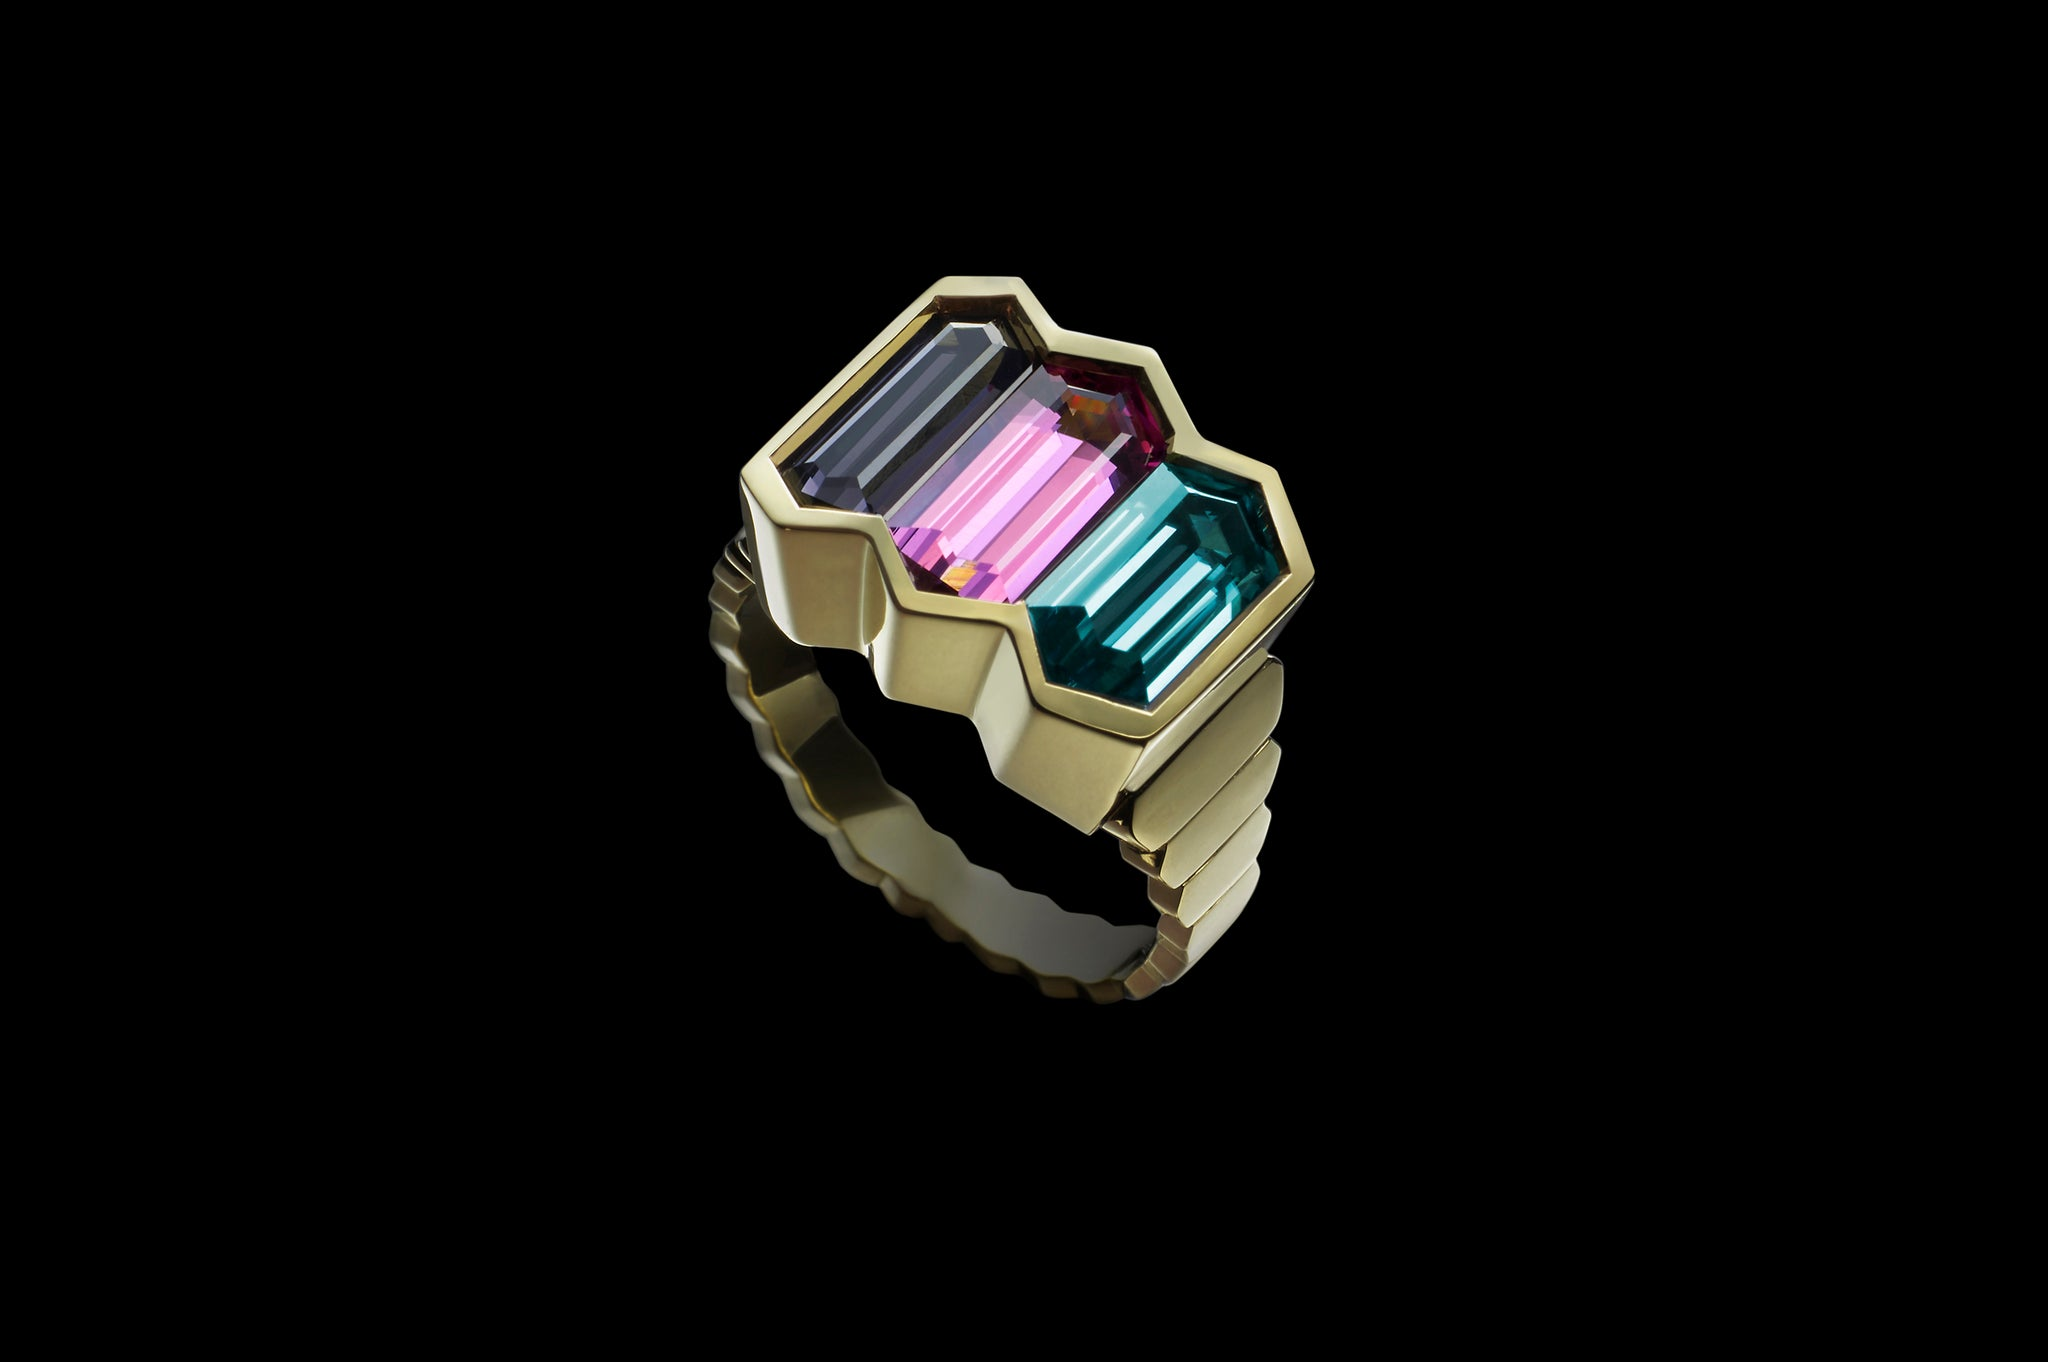 SILVER PINK BLUE RING</br>AVAILABLE TO BUY